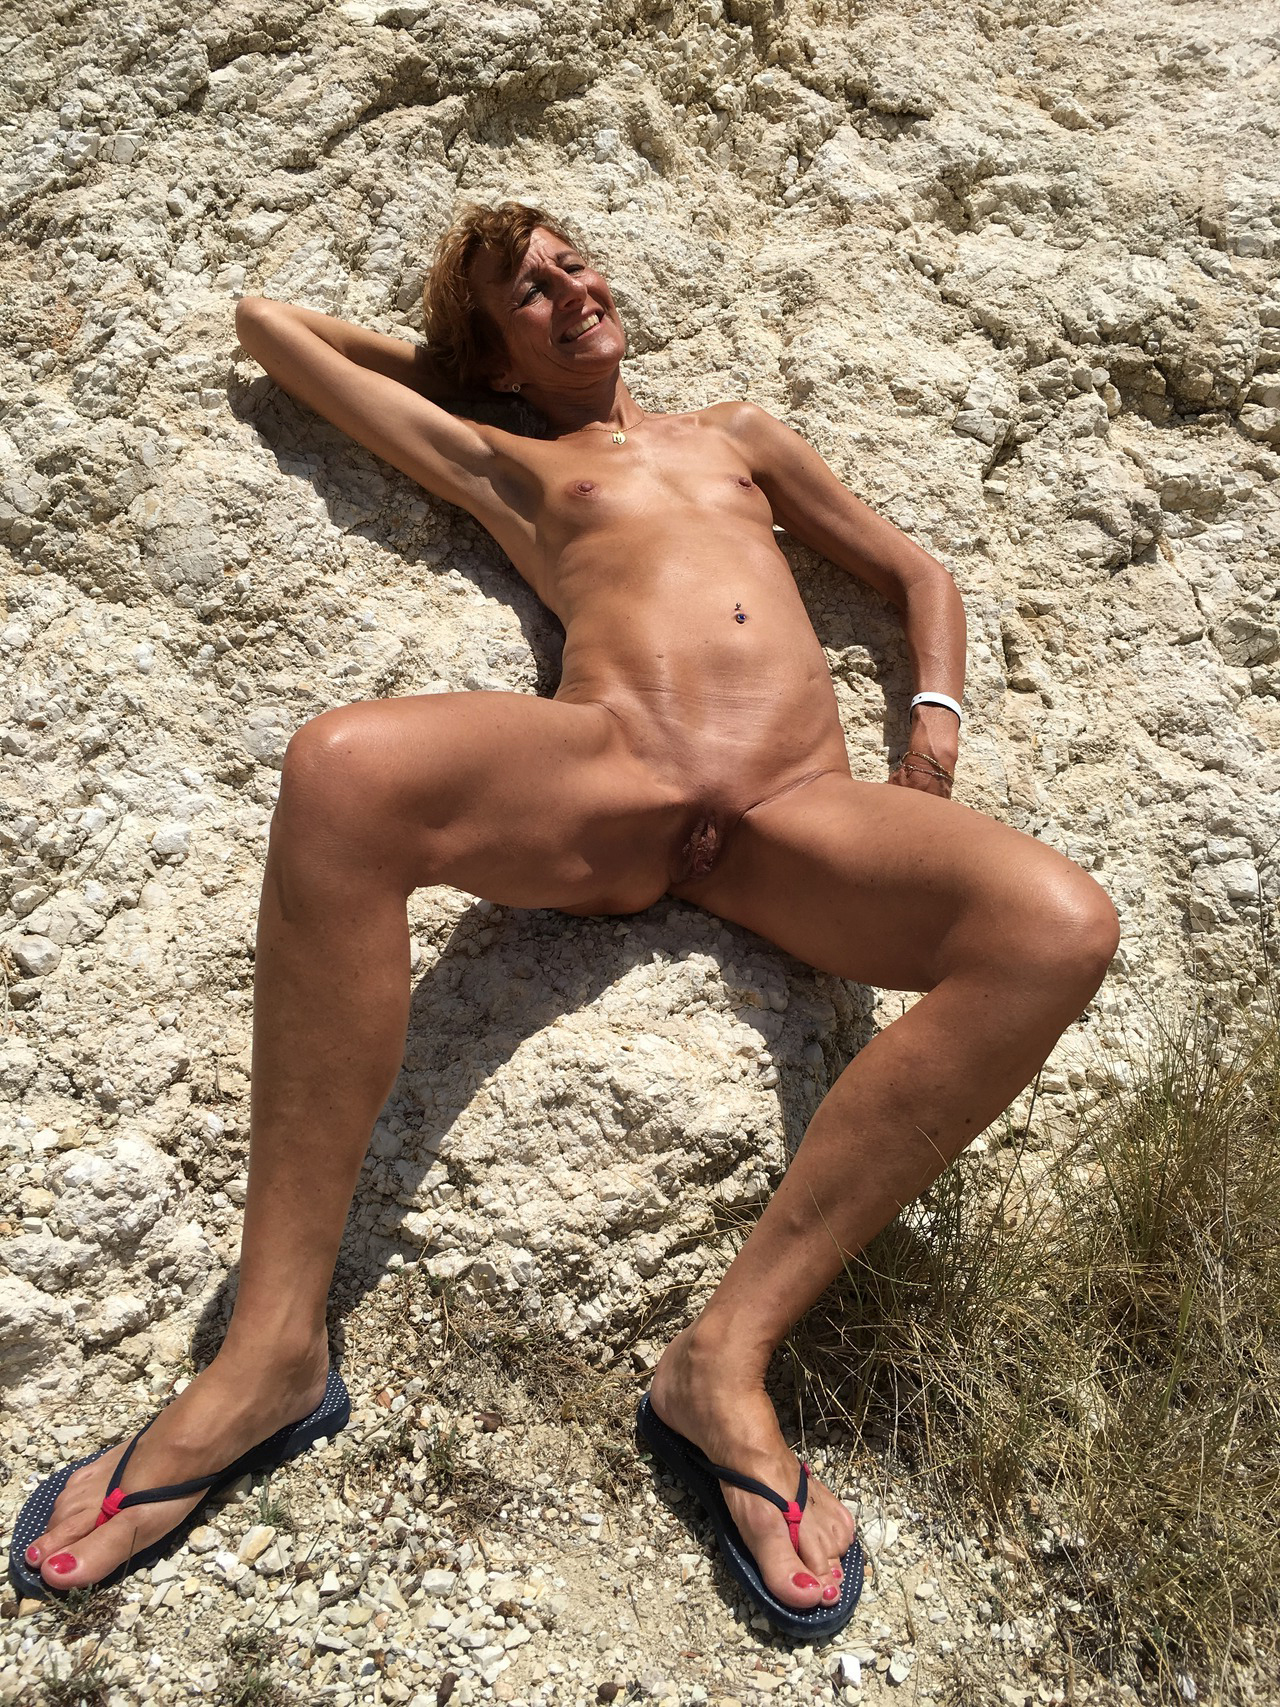 Old Lady Solo Porn Pictures Maturehomemadeporn Com